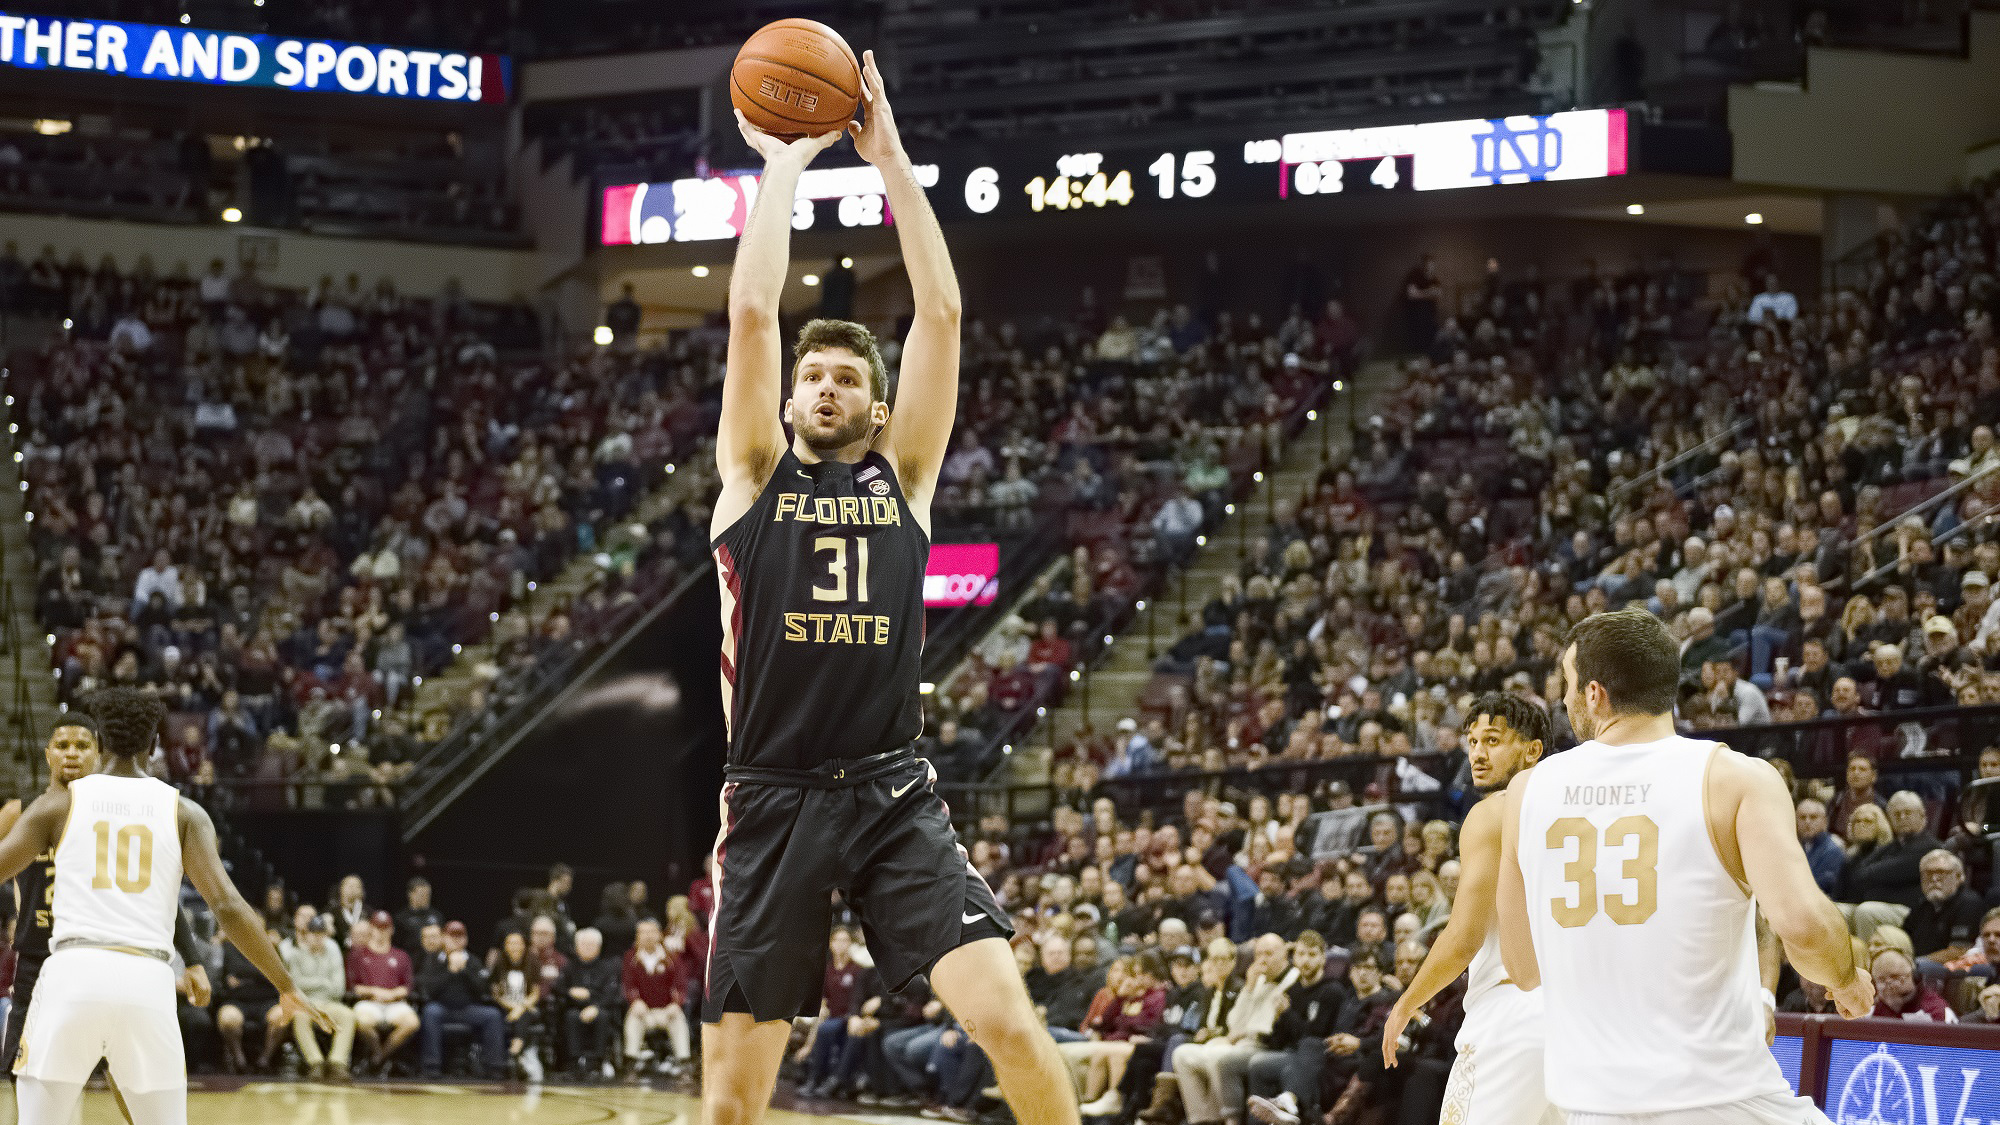 Wilkes' Career High 19 Leads No. 5 Florida State over Notre Dame 85-84